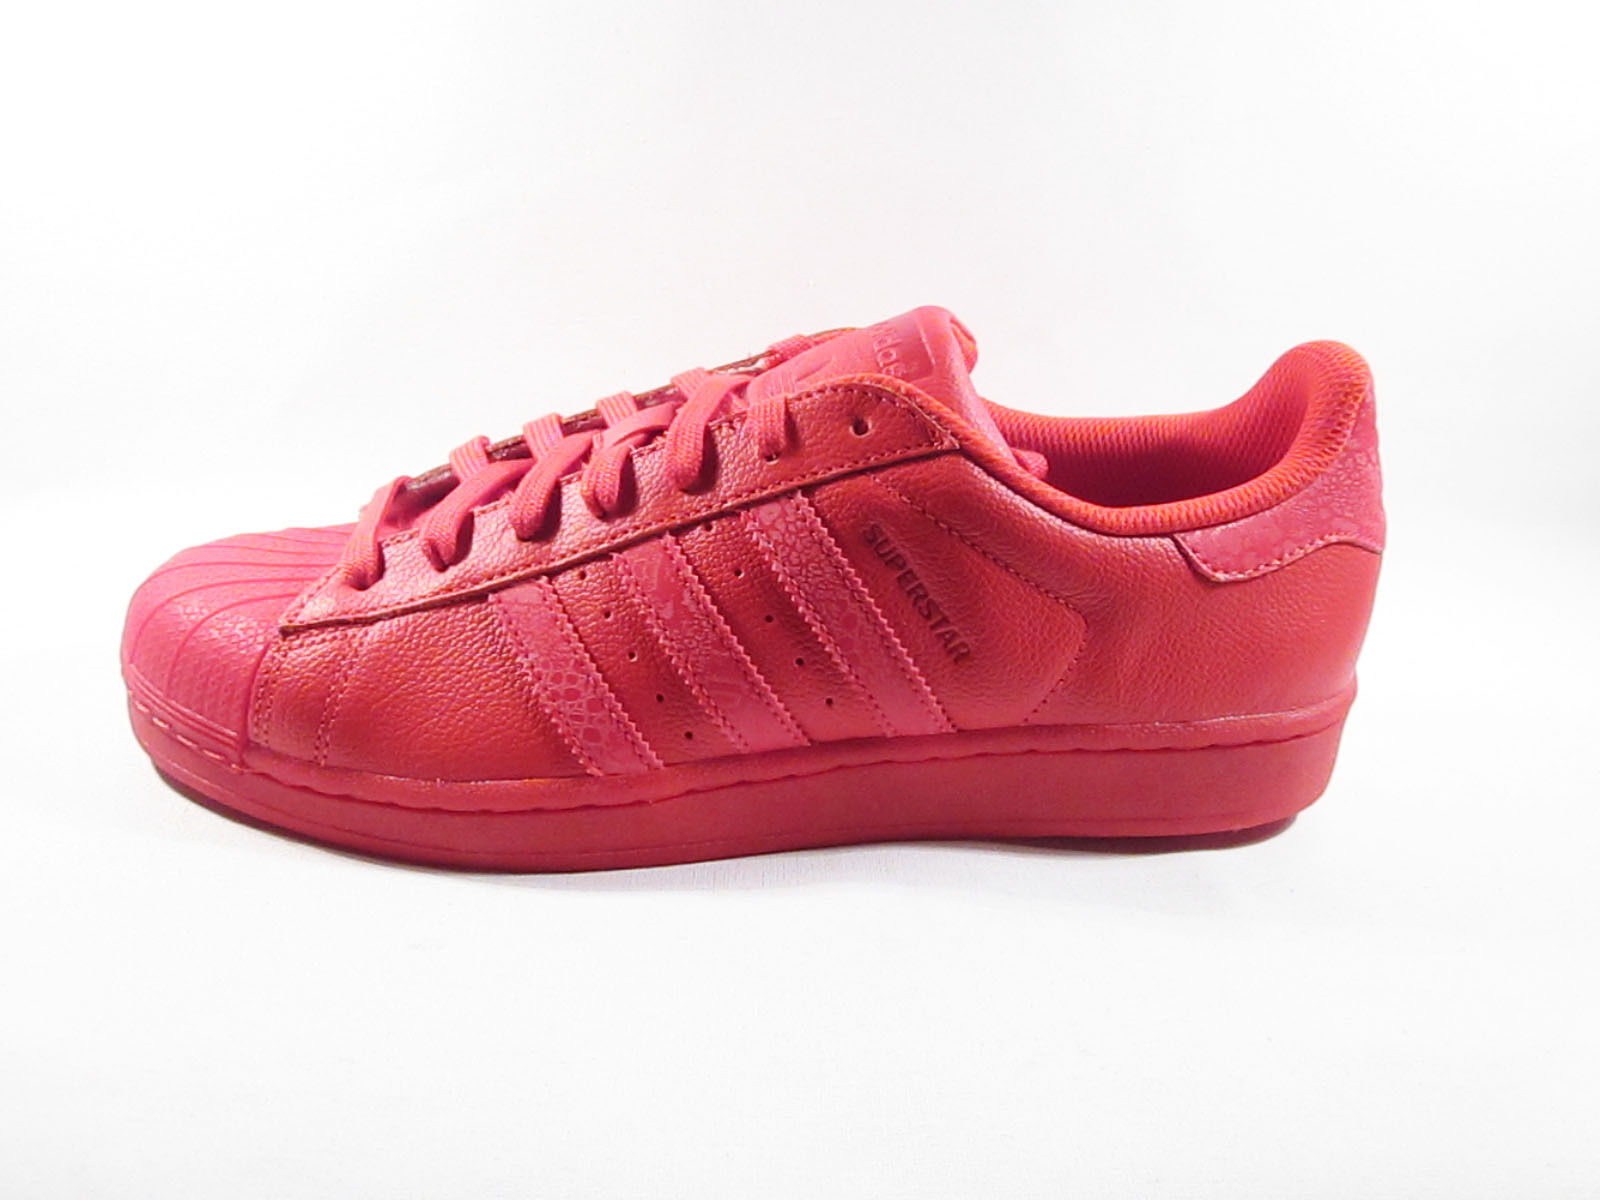 ORIGINAL ADIDAS SUPERSTAR RED LEATHER REFLECTIVE TRAINERS S75538